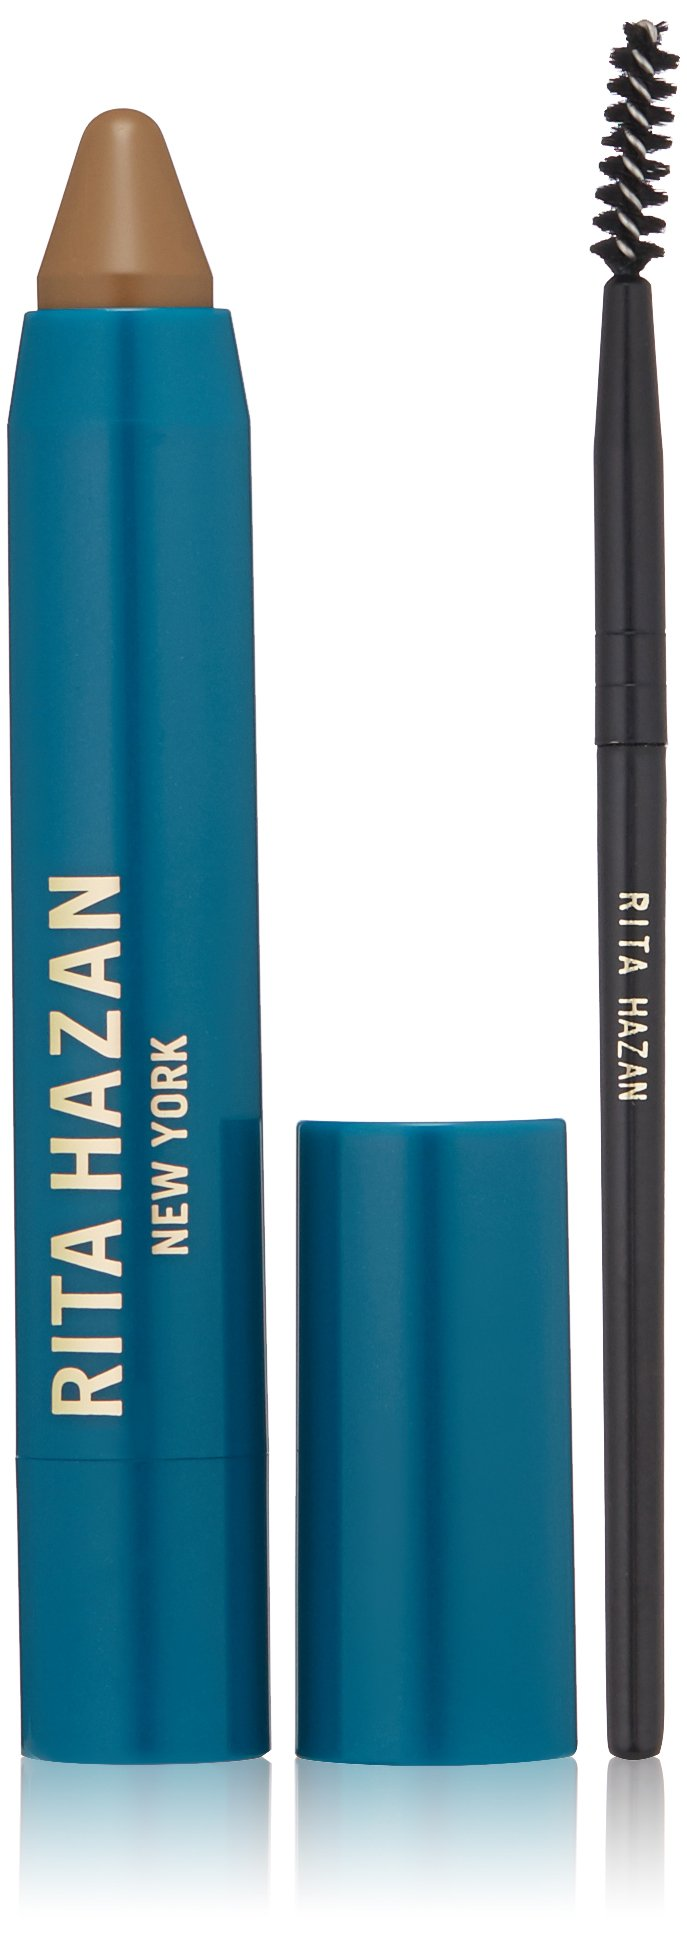 Rita Hazan- Cream Root Concealer Stick- Temple +Eyebrow Edition